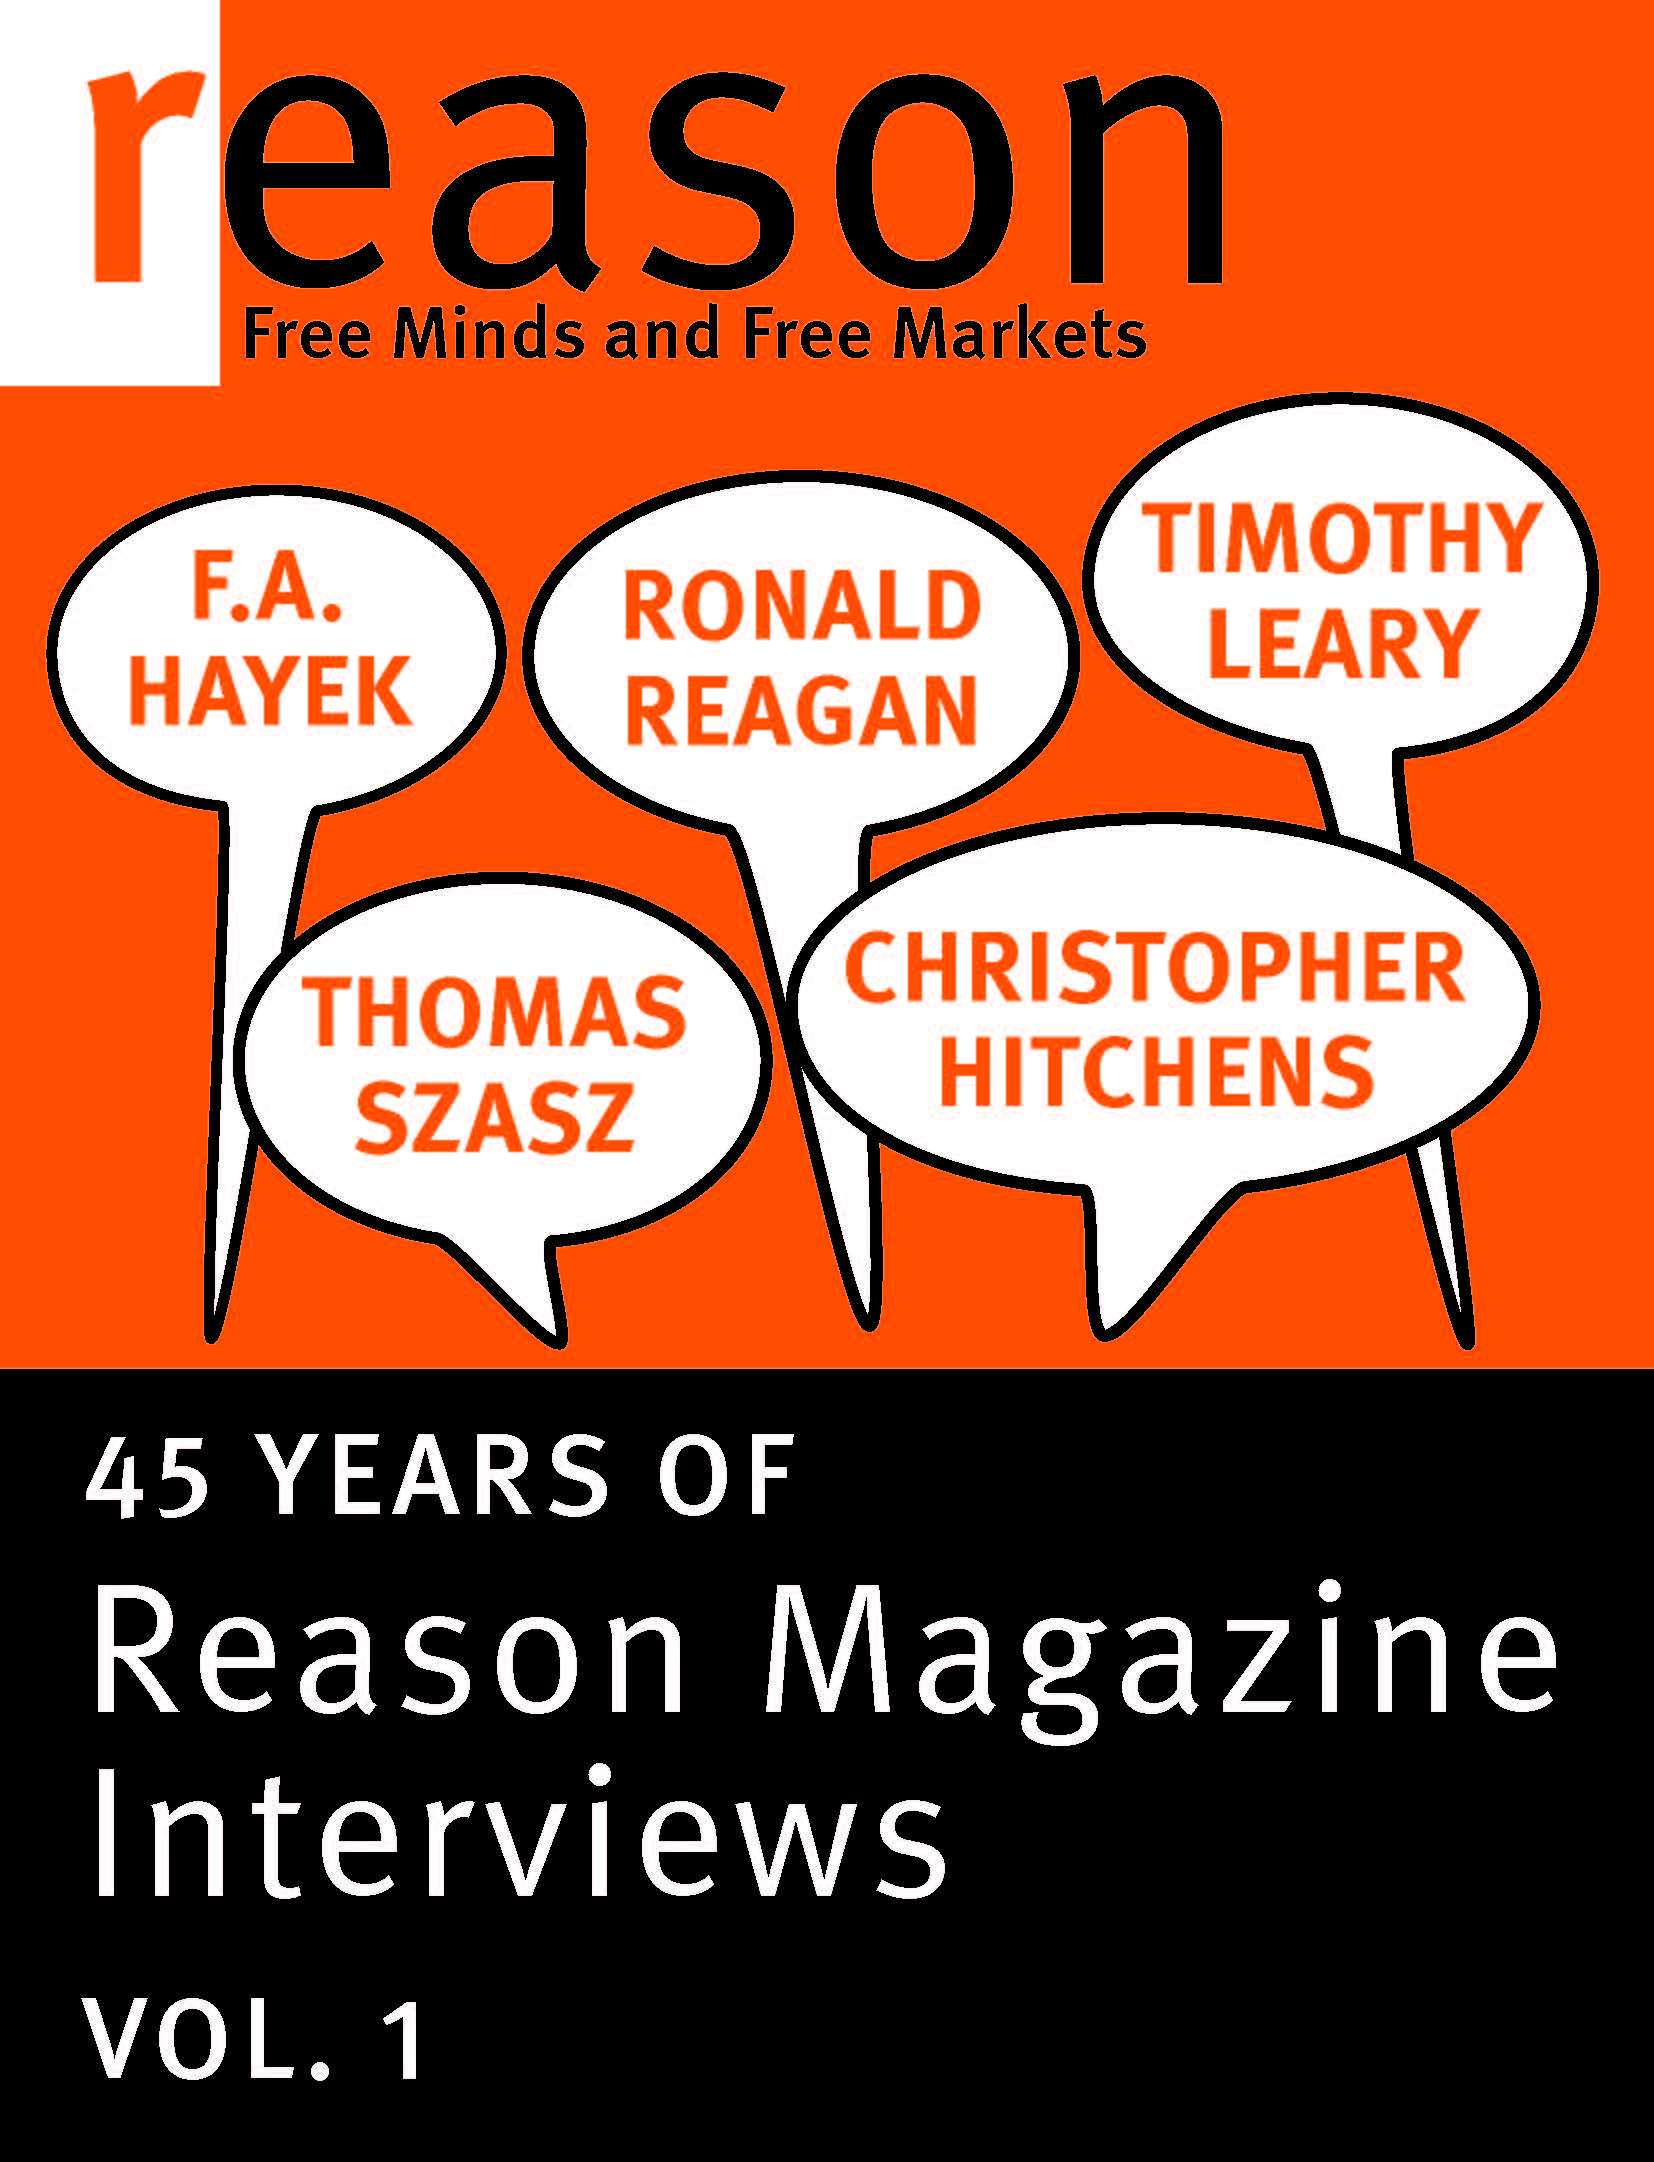 Reason Interviews F.A. Hayek, Ronald Reagan, Christopher Hitchens, Thomas Szasz, and Timothy Leary